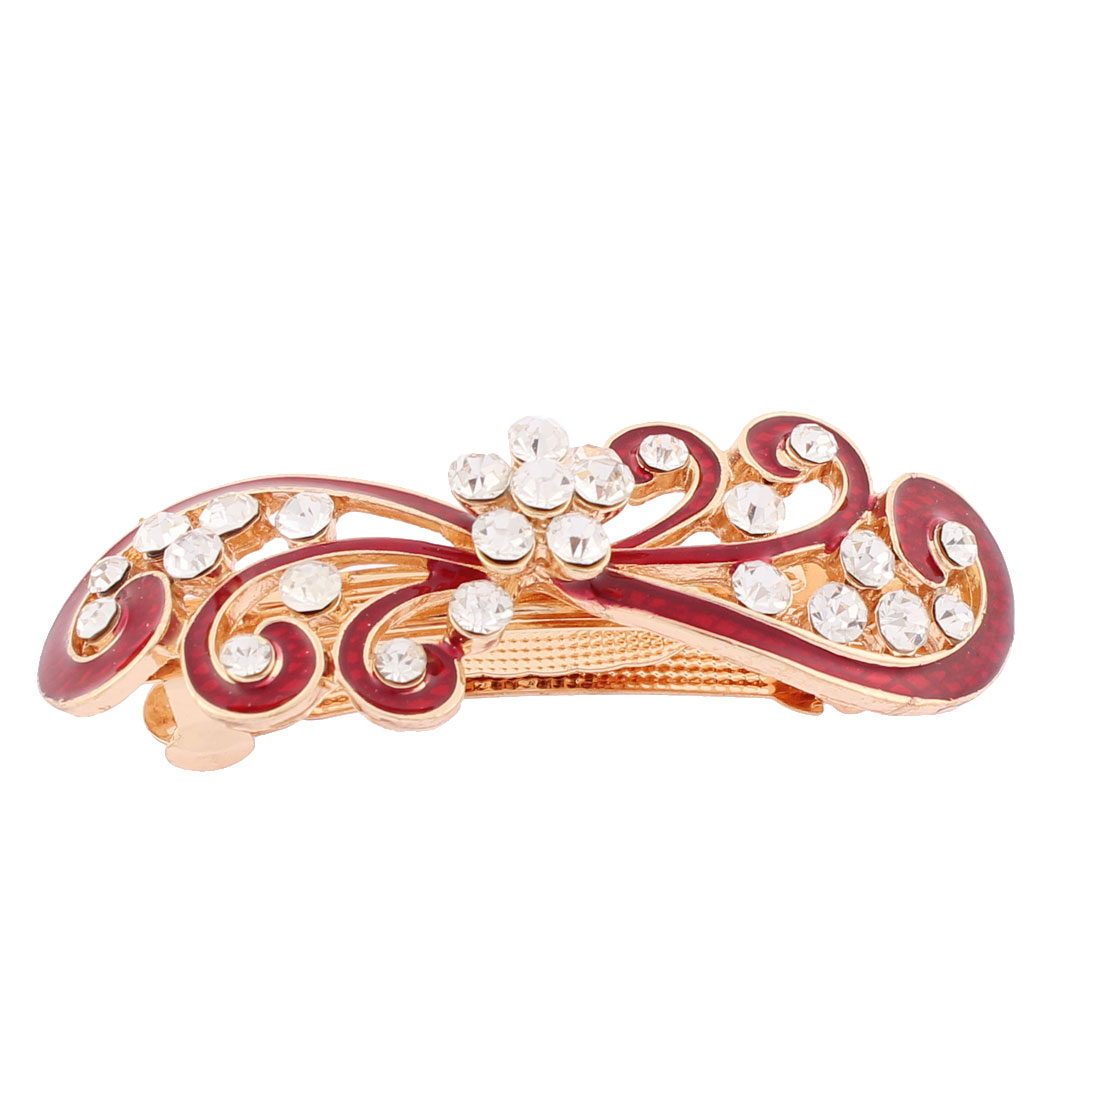 Women Plastic Rhinestones Inlaid Red Floral Accent French Barrette Style Metal Hair Clip Hairpin Decor Gold Tone